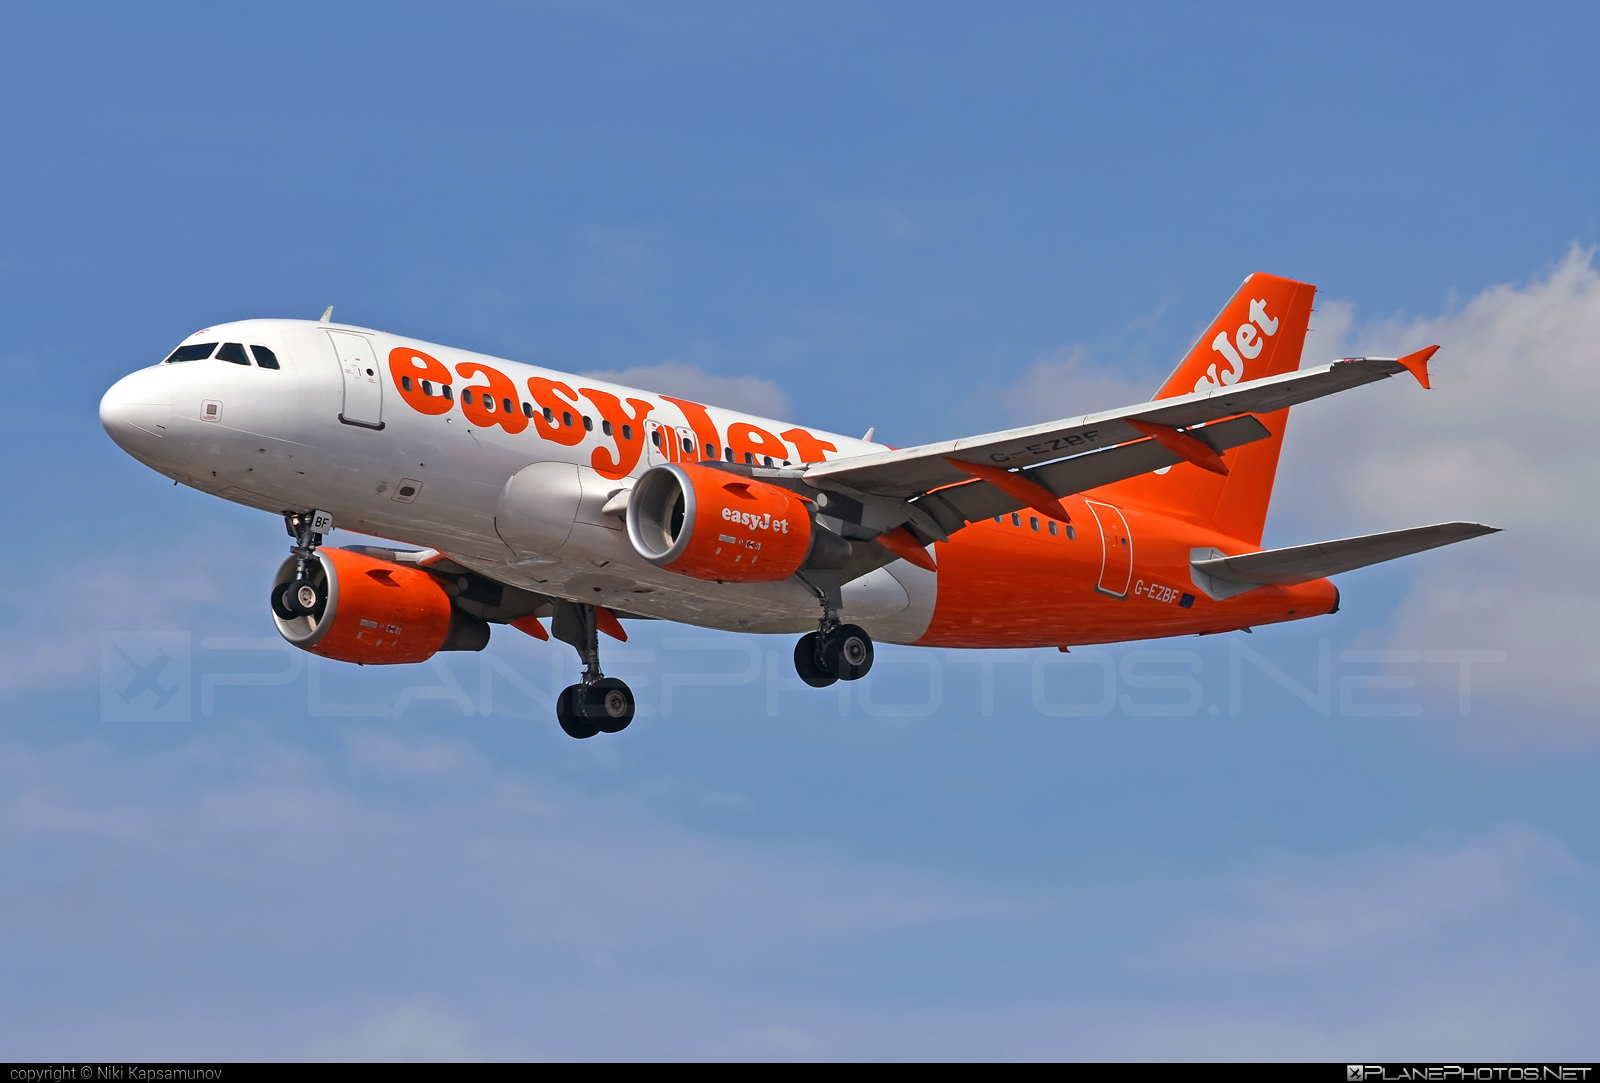 Airbus A319-111 - G-EZBF operated by easyJet #a319 #a320family #airbus #airbus319 #easyjet